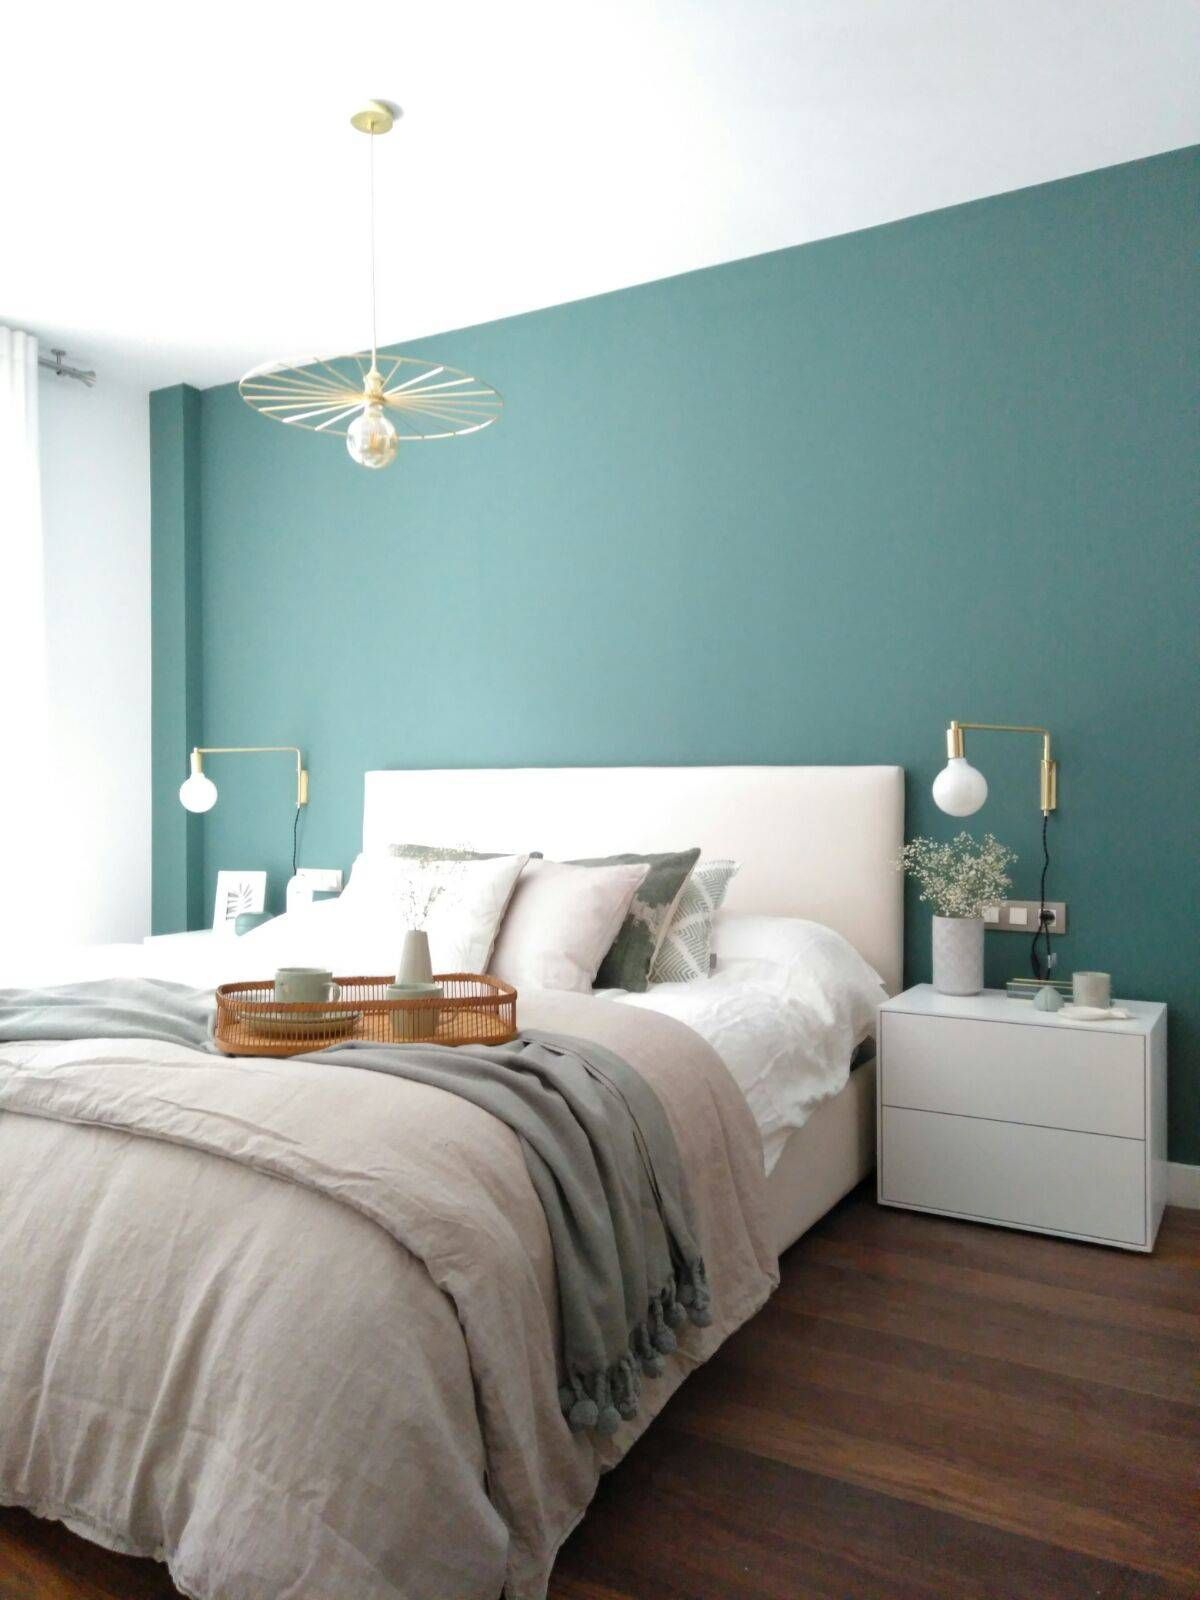 Modern Bedroom Color Ideas Check More At Https 2020homedesign